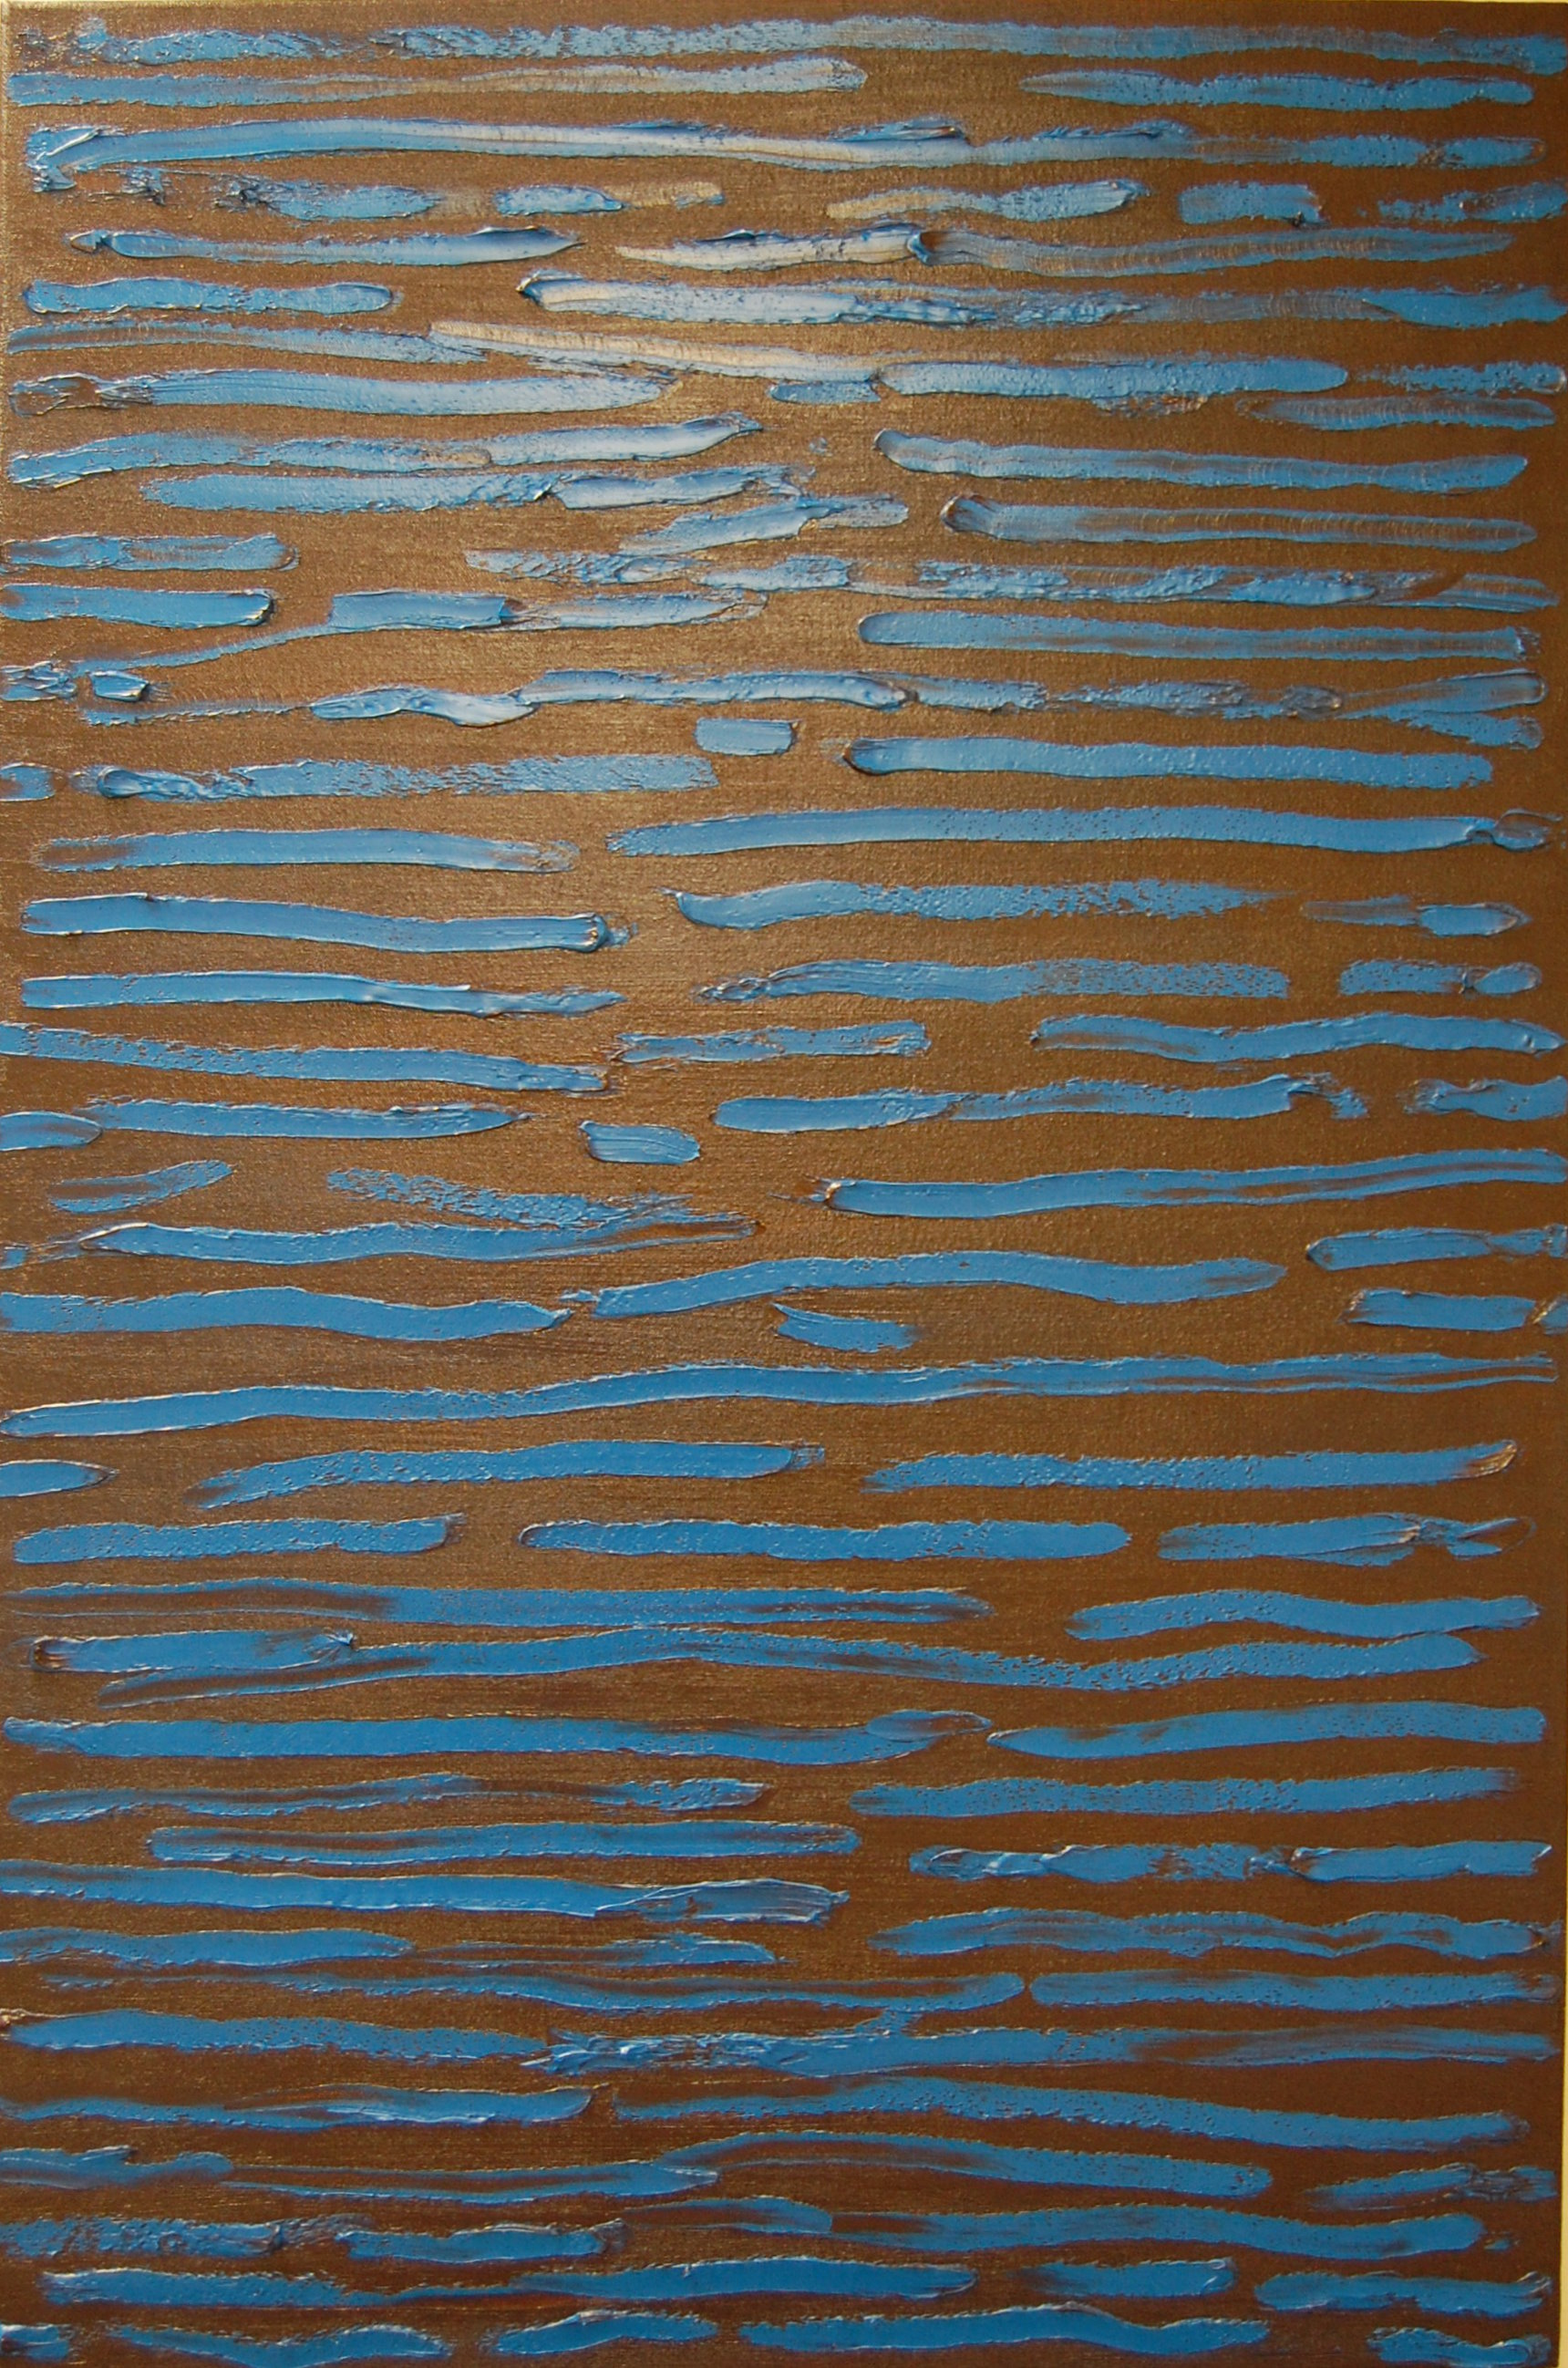 """Untitled"", Oil on Canvas, 24''x36'', SOLD"